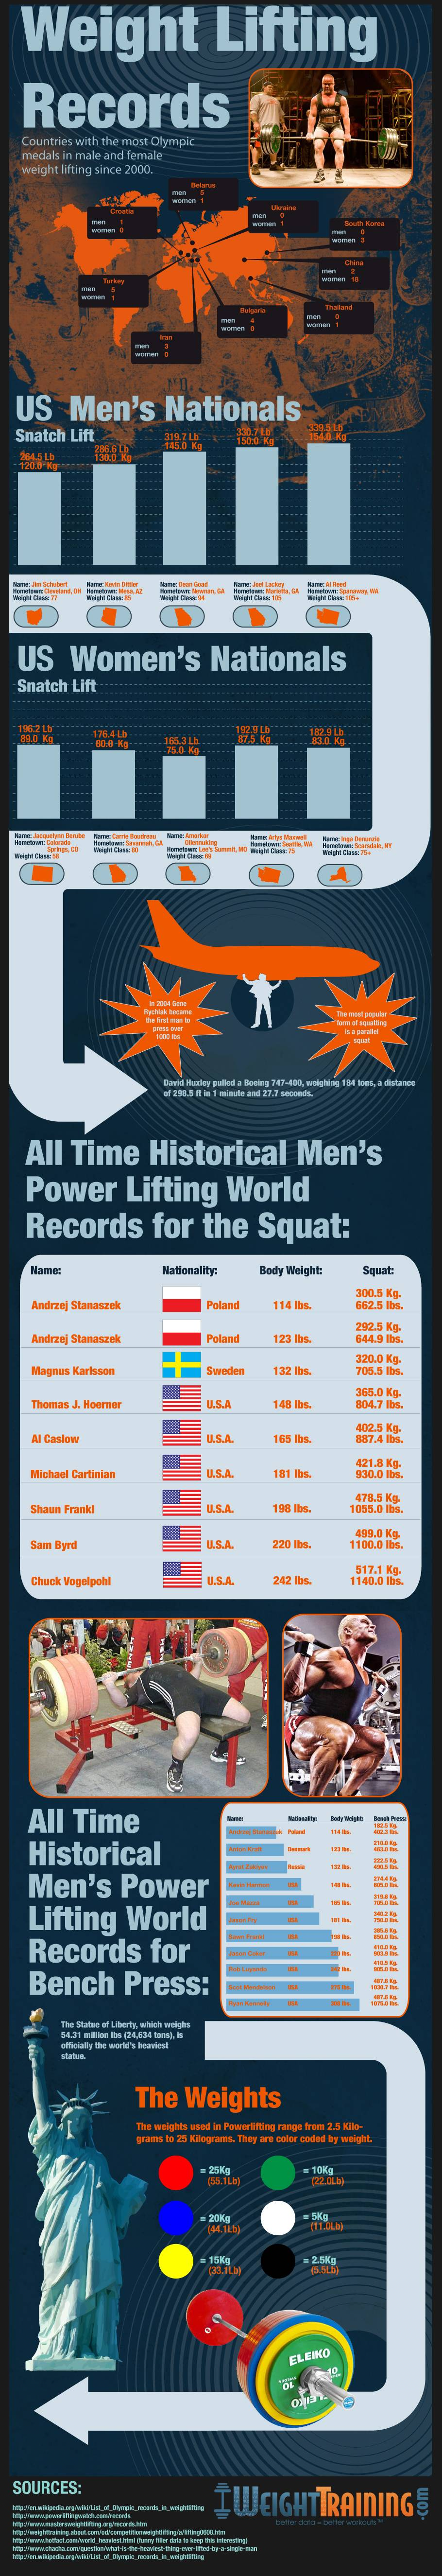 Optimized-weight-lifting-records (1).jpeg